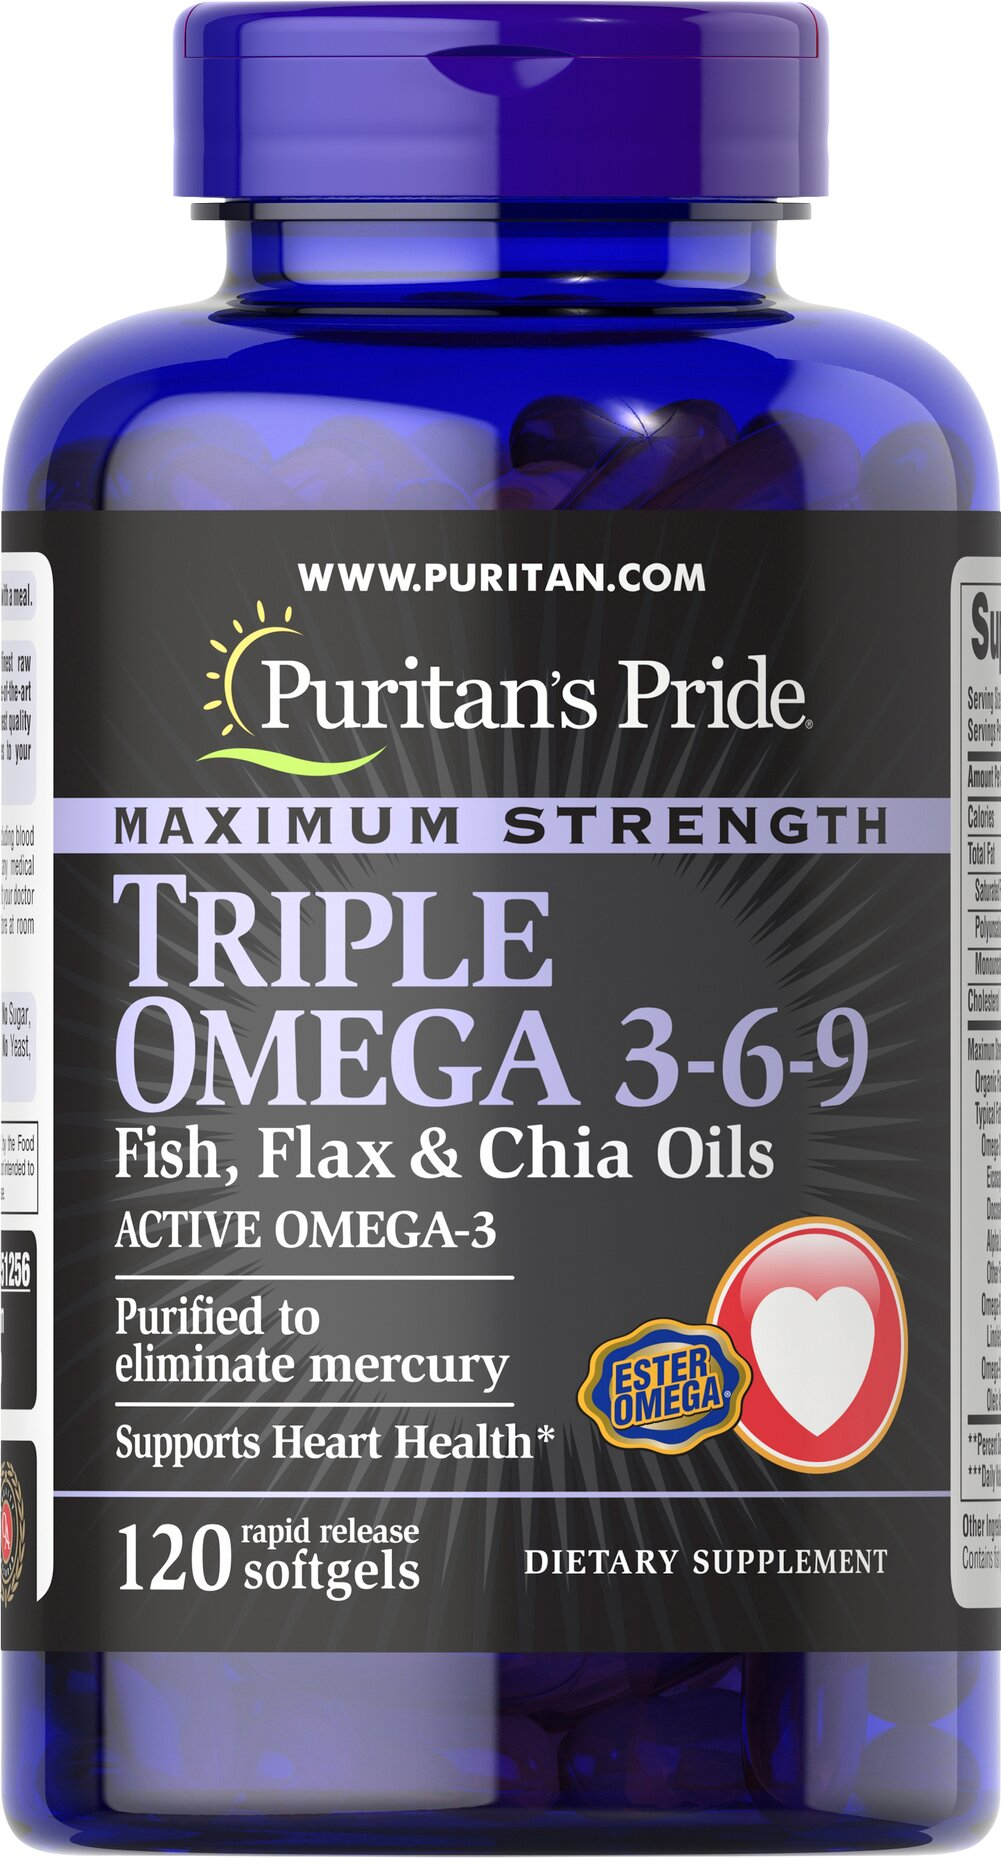 Maximum Strength Triple Omega 3-6-9 Fish, Flax & Chia Oils Thumbnail Alternate Bottle View